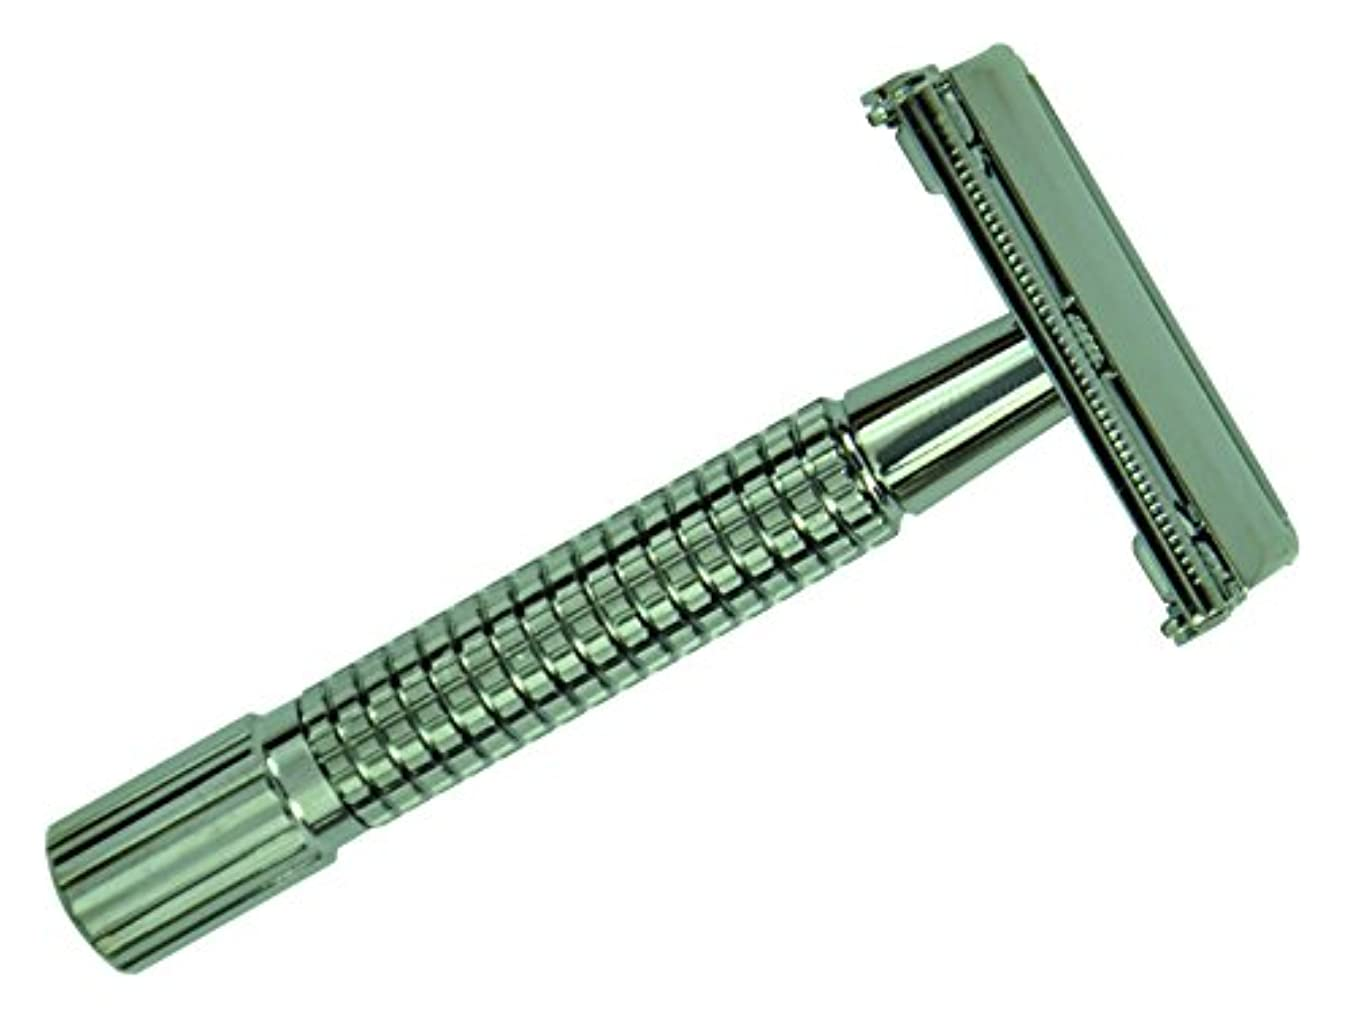 スリップシューズ意識的第四GOLDDACHS double blade razor, titanium, ribbed grip,